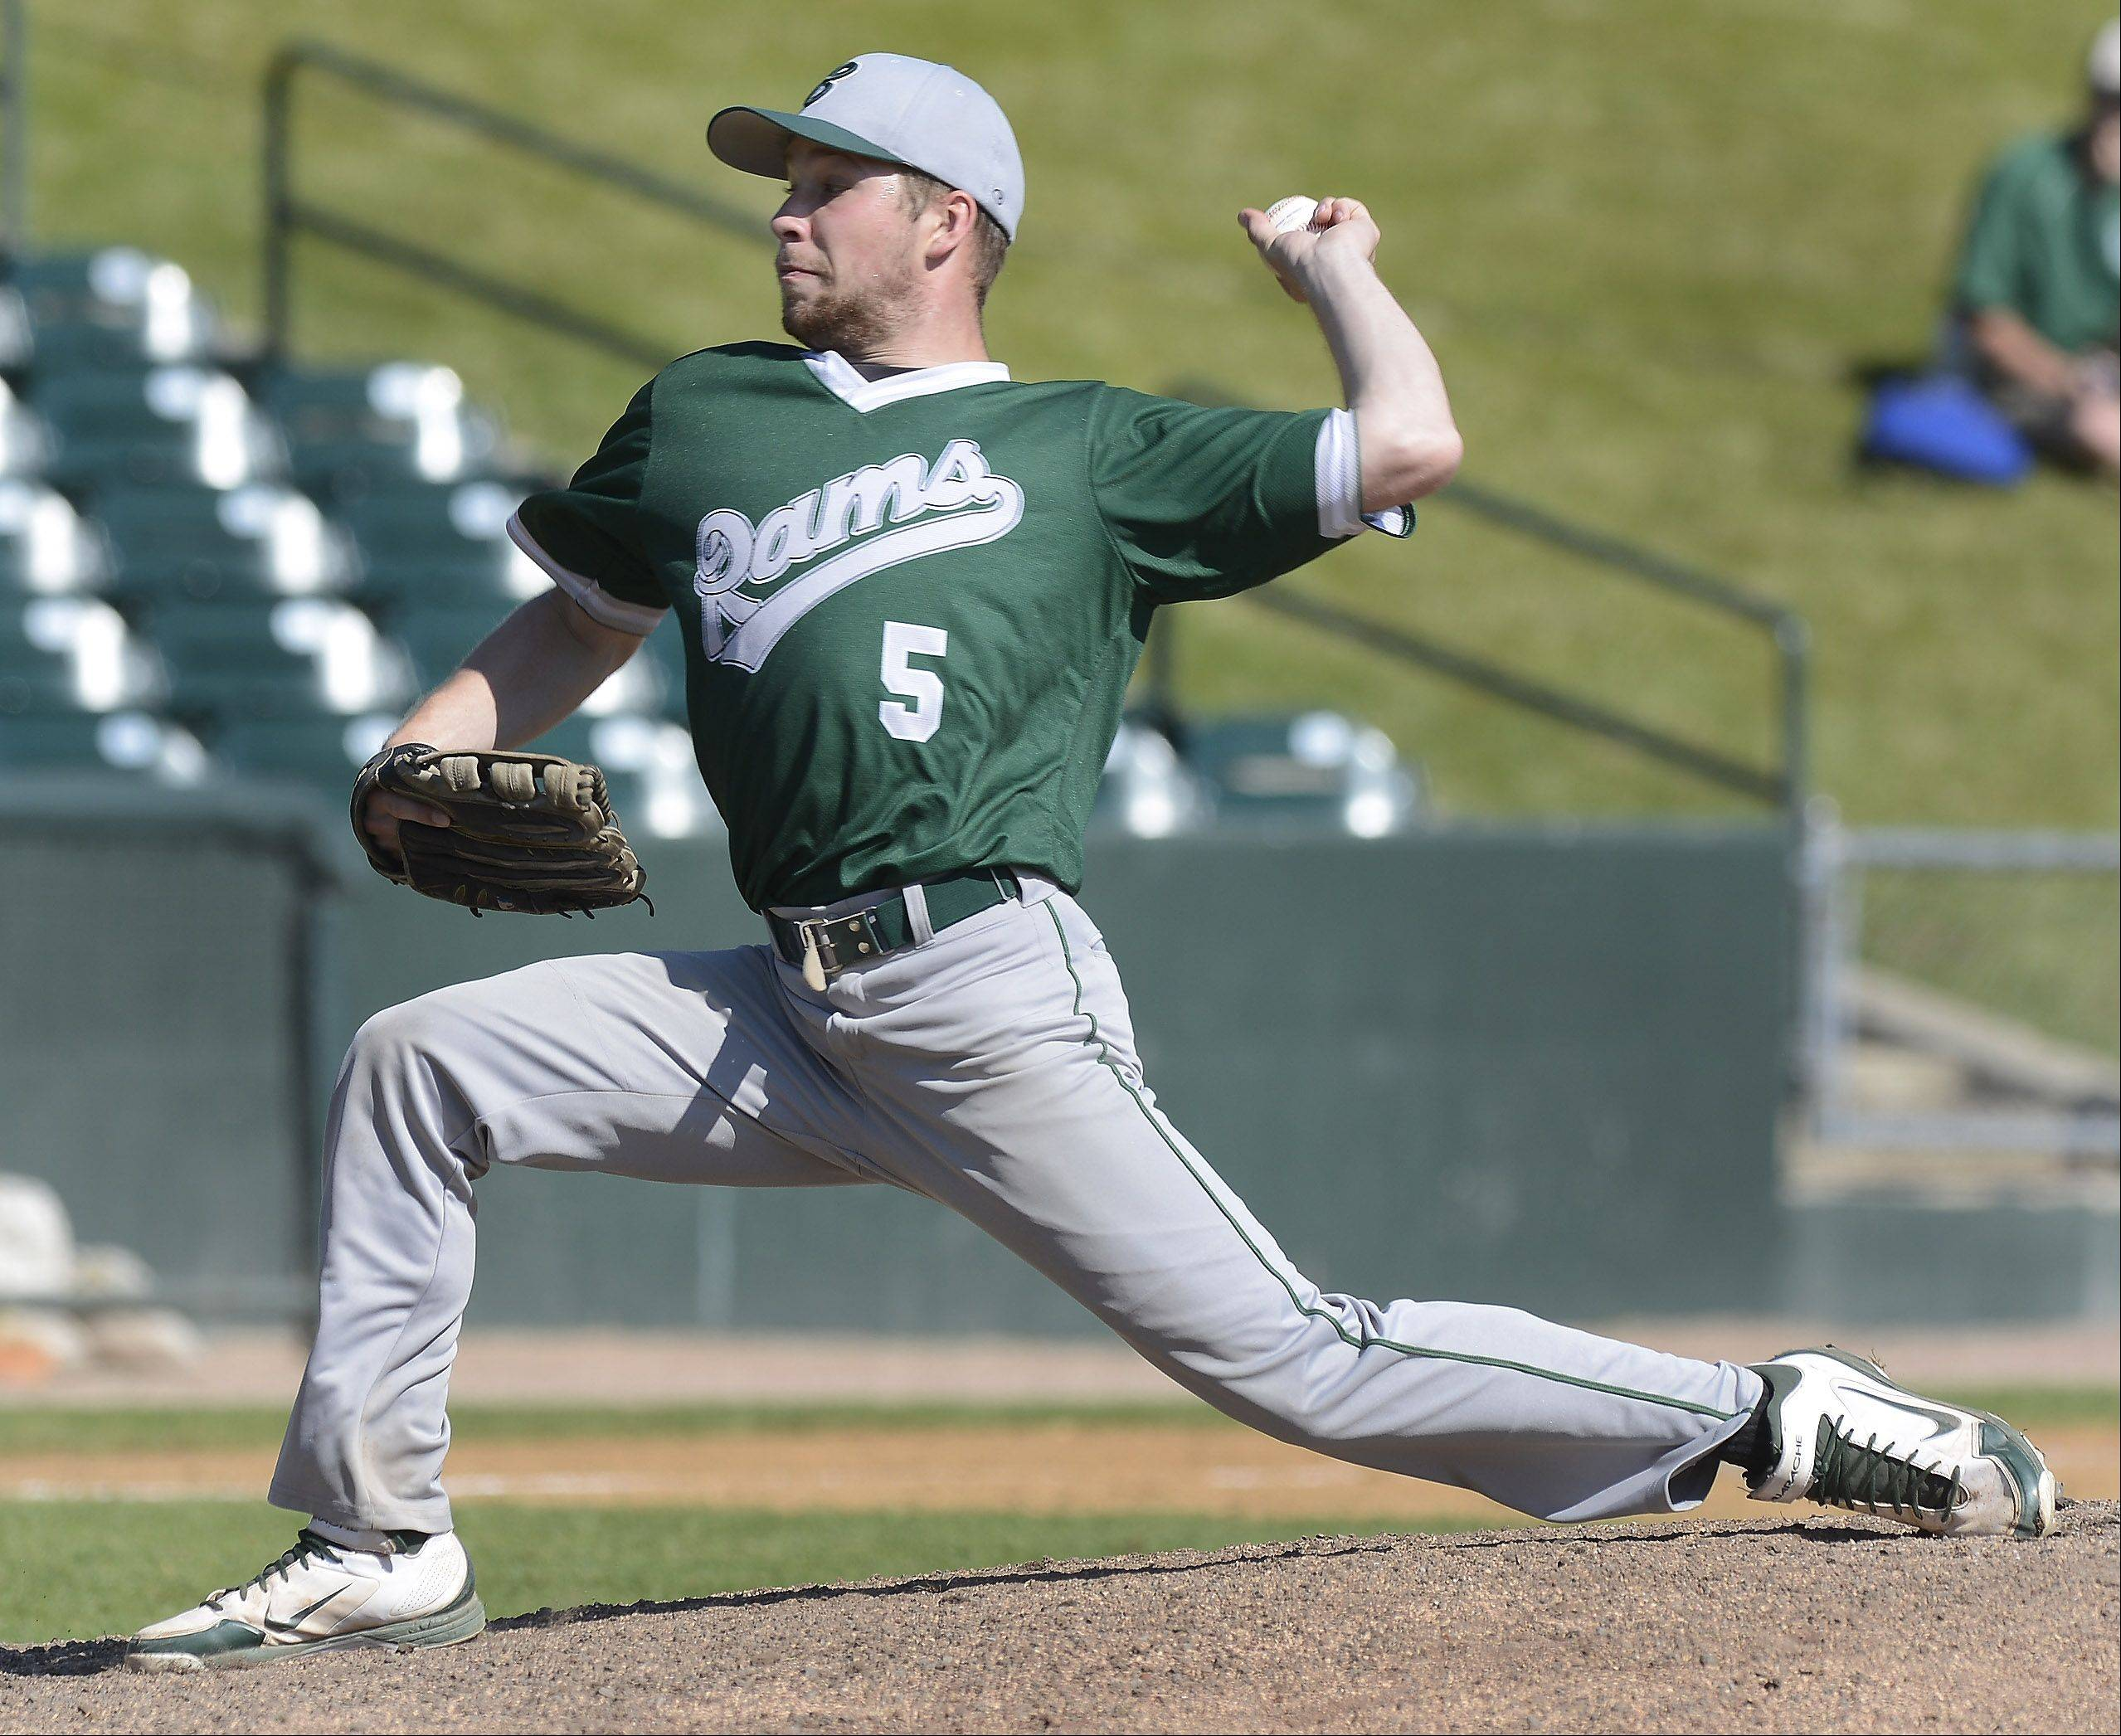 Grayslake Central pitcher Kevin Peloza delivers a pitch during the Class 3A state baseball third-place game against Mt. Vernon at Silver Cross Field in Joliet Saturday.